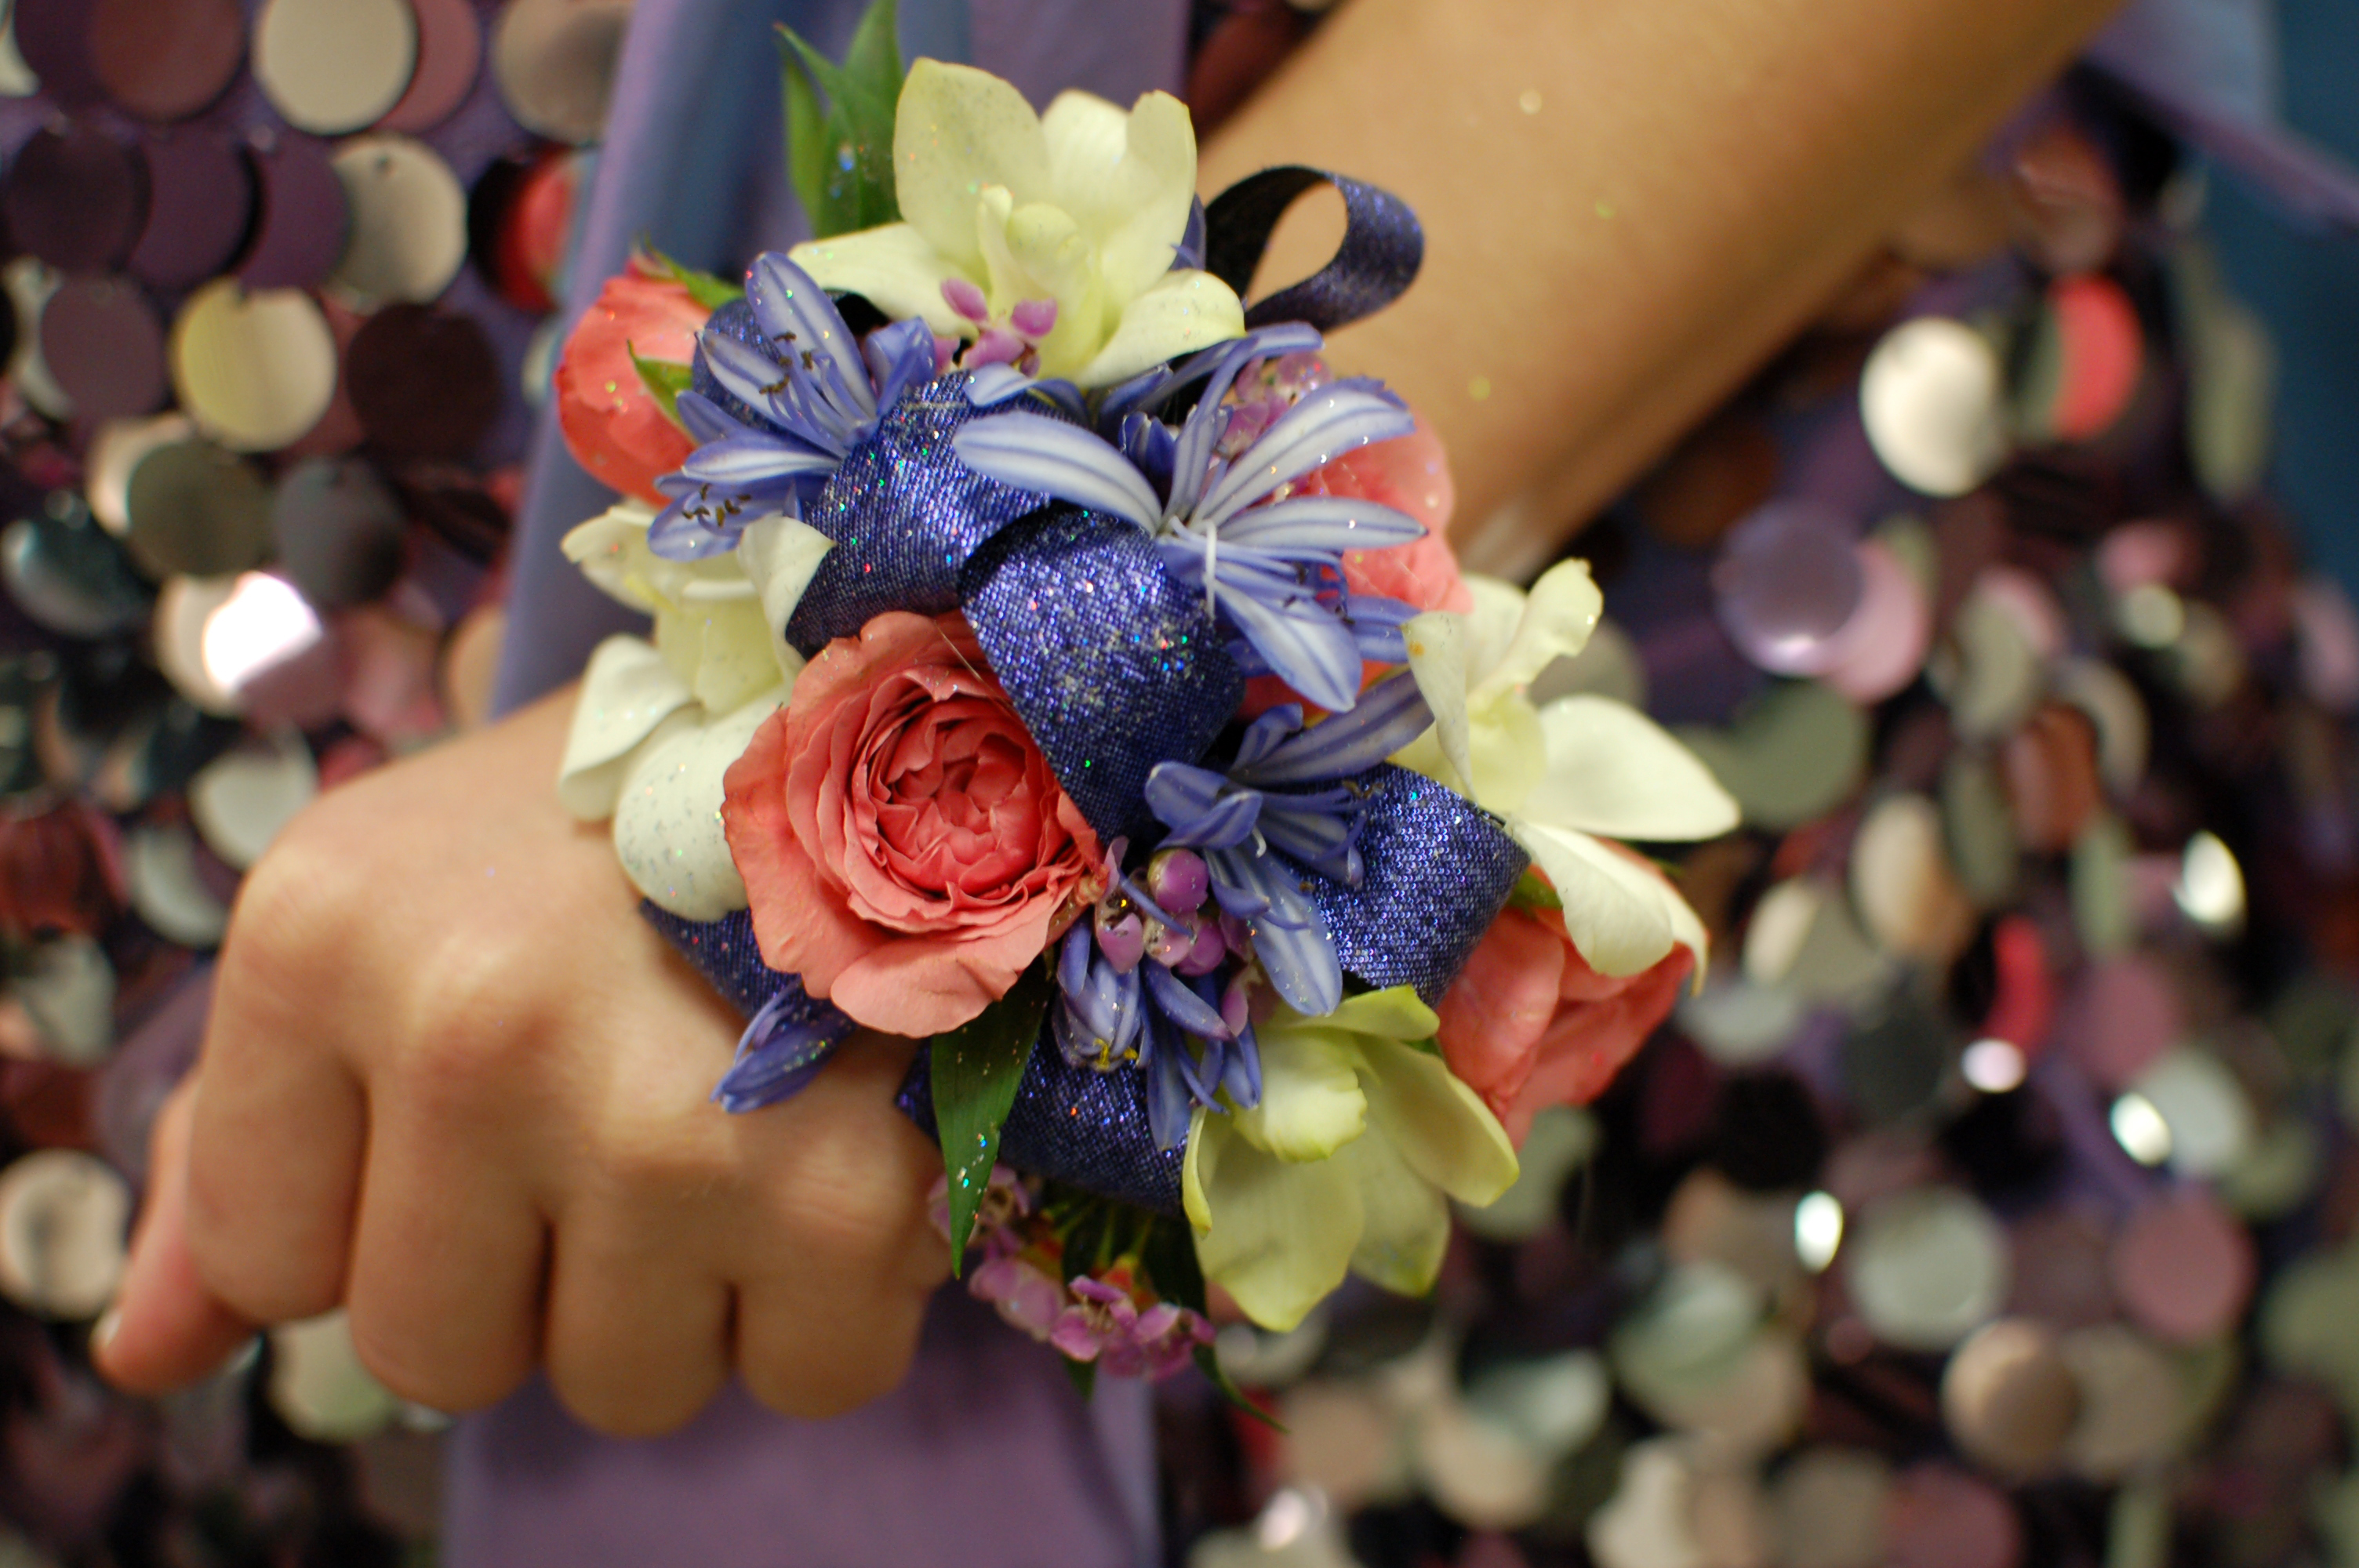 Flower Corsage & Prom Time! What Is Your Prom Style? 25forcollege.com